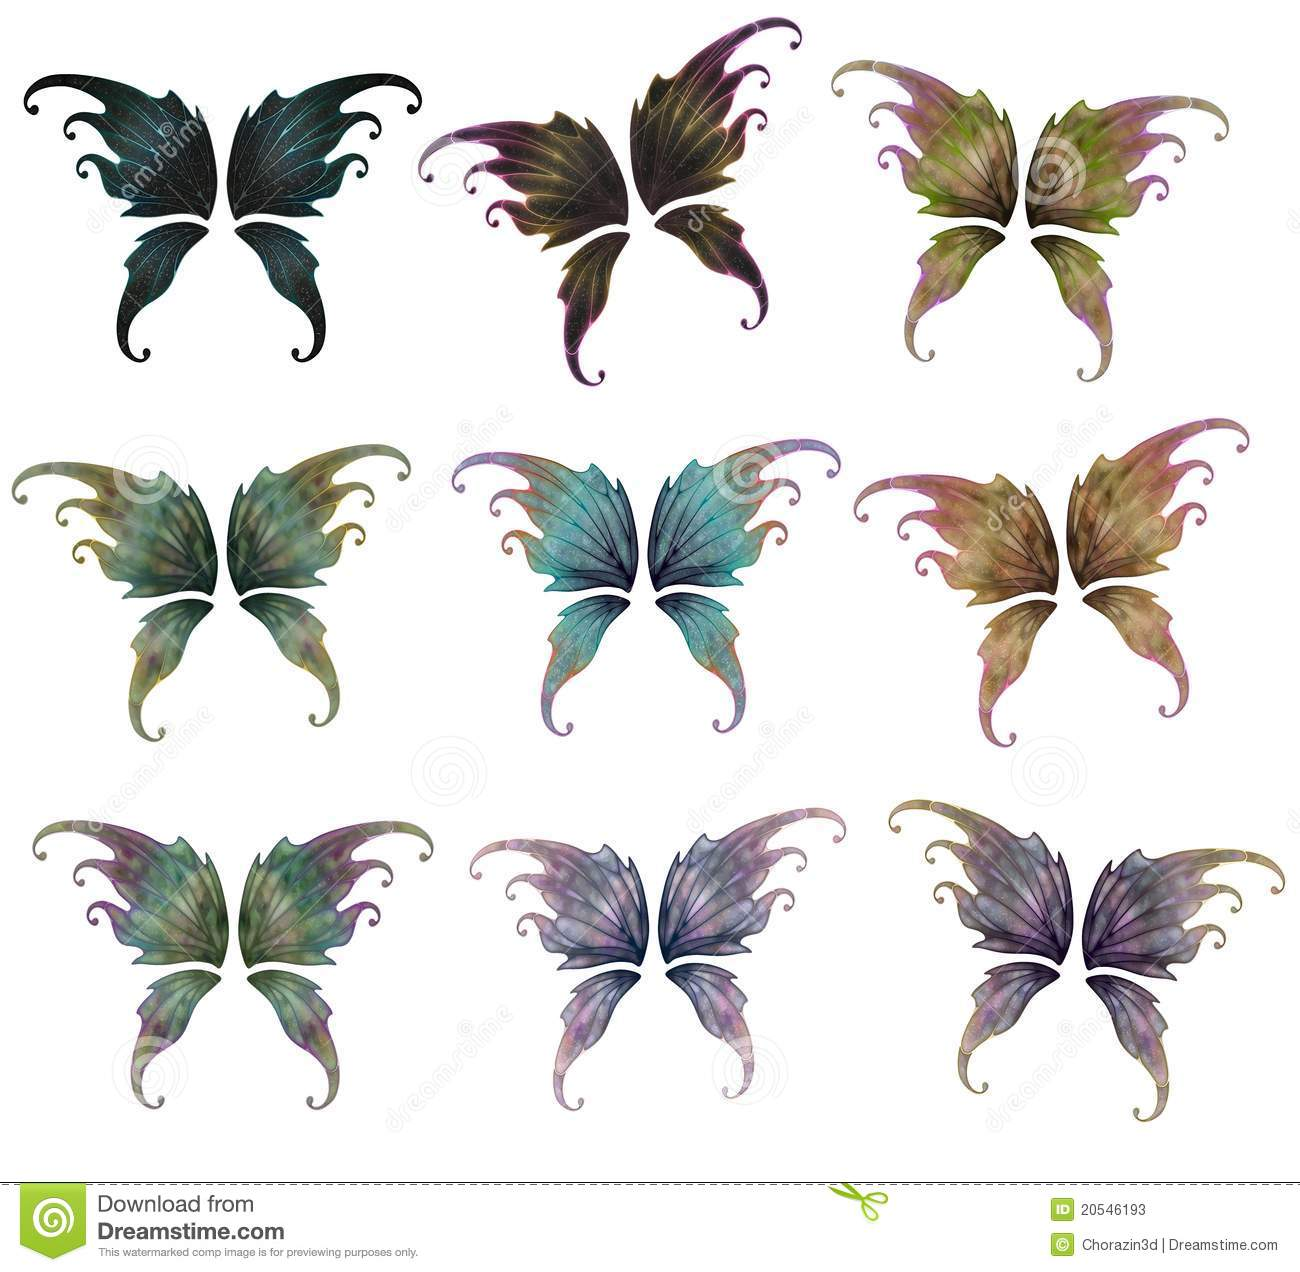 Fairy Wings Stock Photos - Image: 20546193